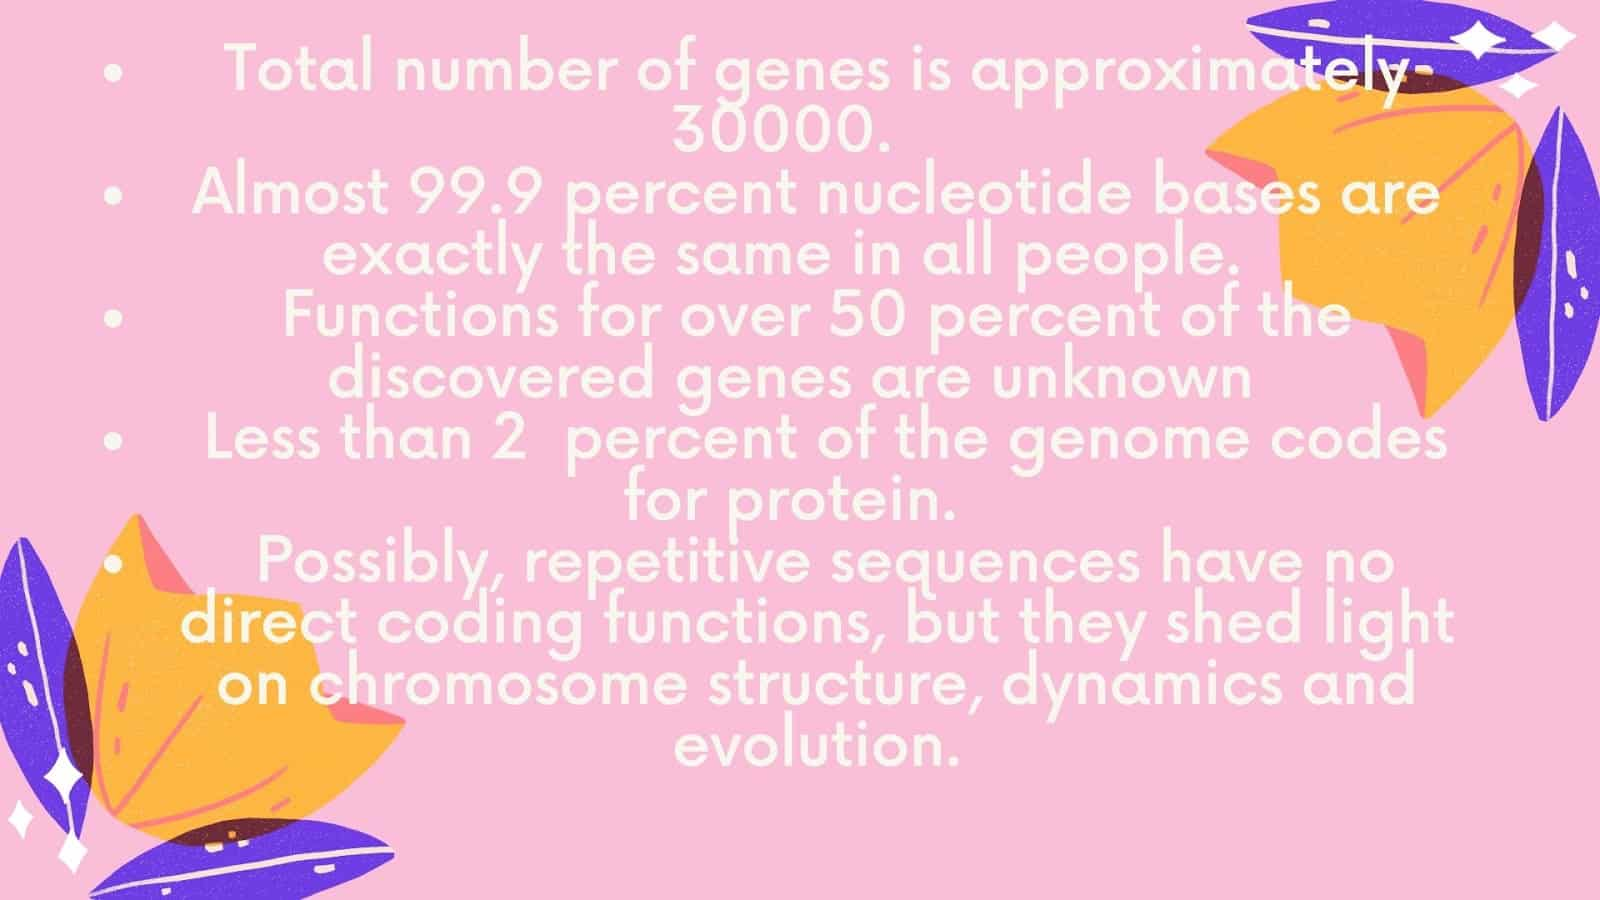 Everything You Need To Know About The Human Genome Project